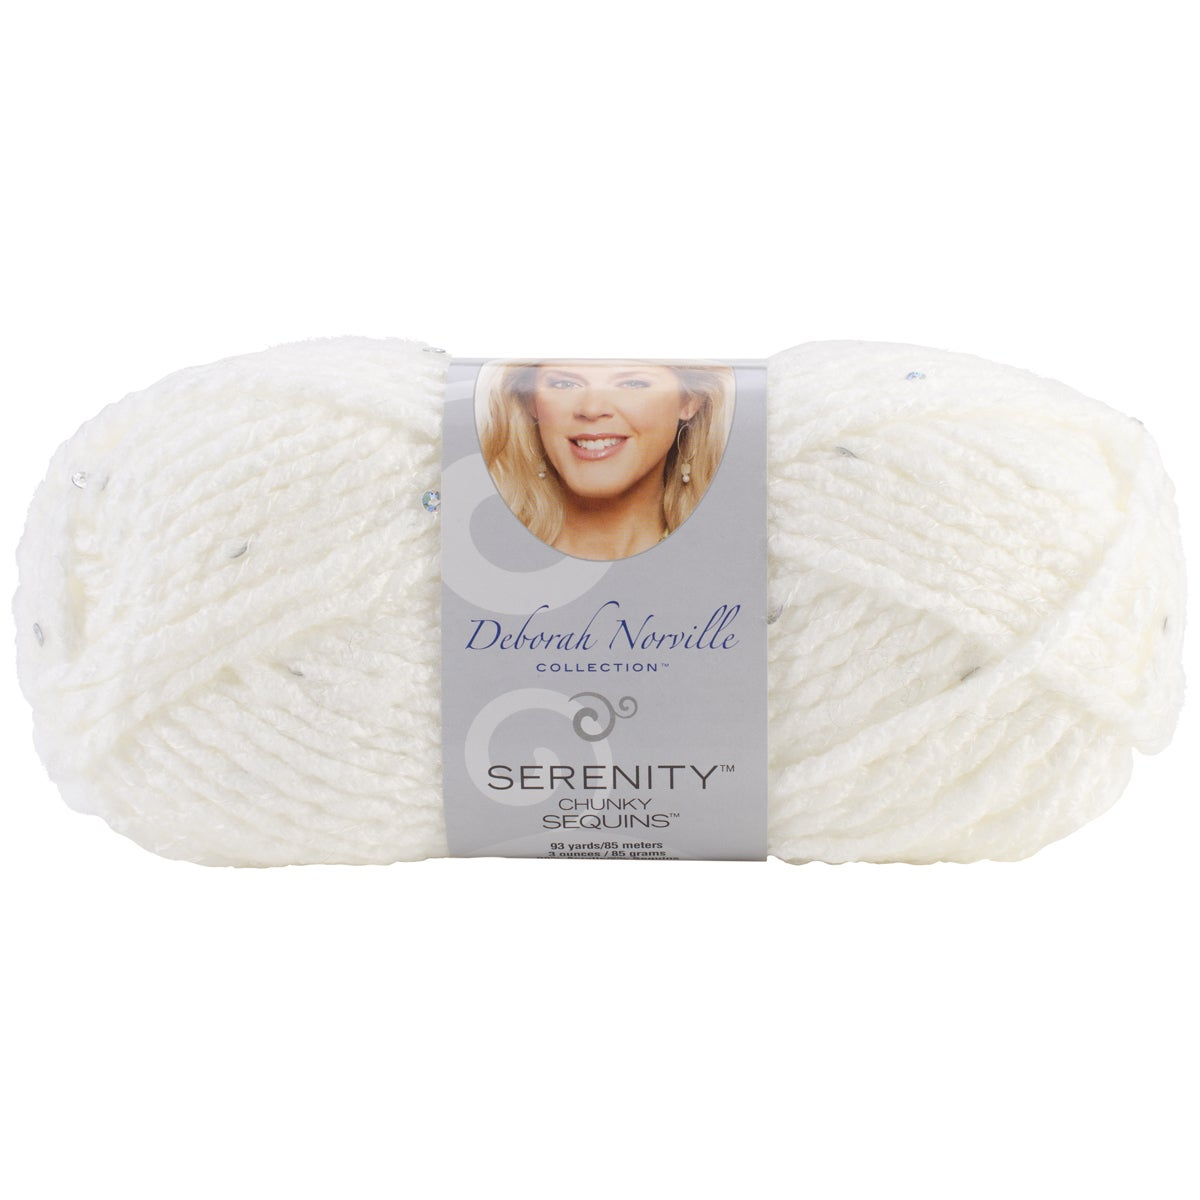 Premier Deborah Norville Collection Serenity Chunky Sequi...